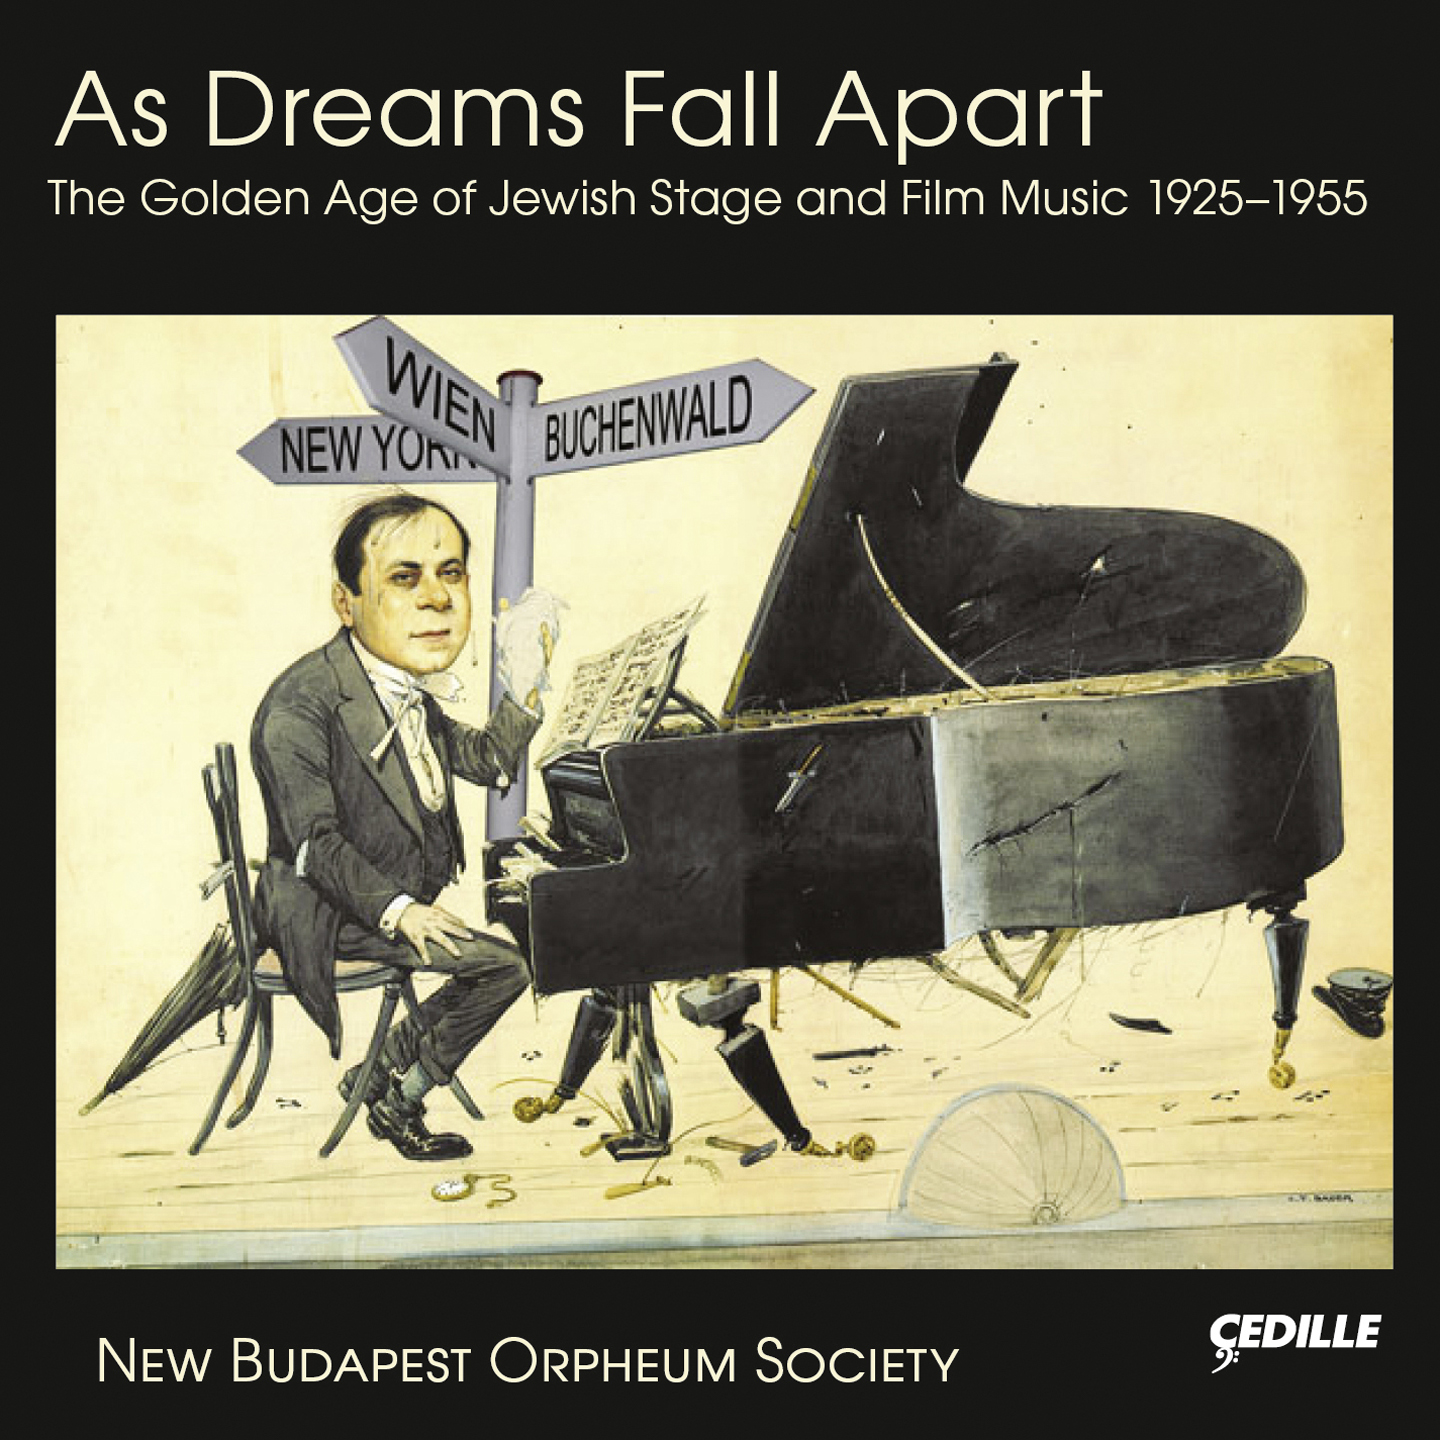 As Dreams Fall Apart: The Golden Age of Jewish Stage & Film Music 1925-1955